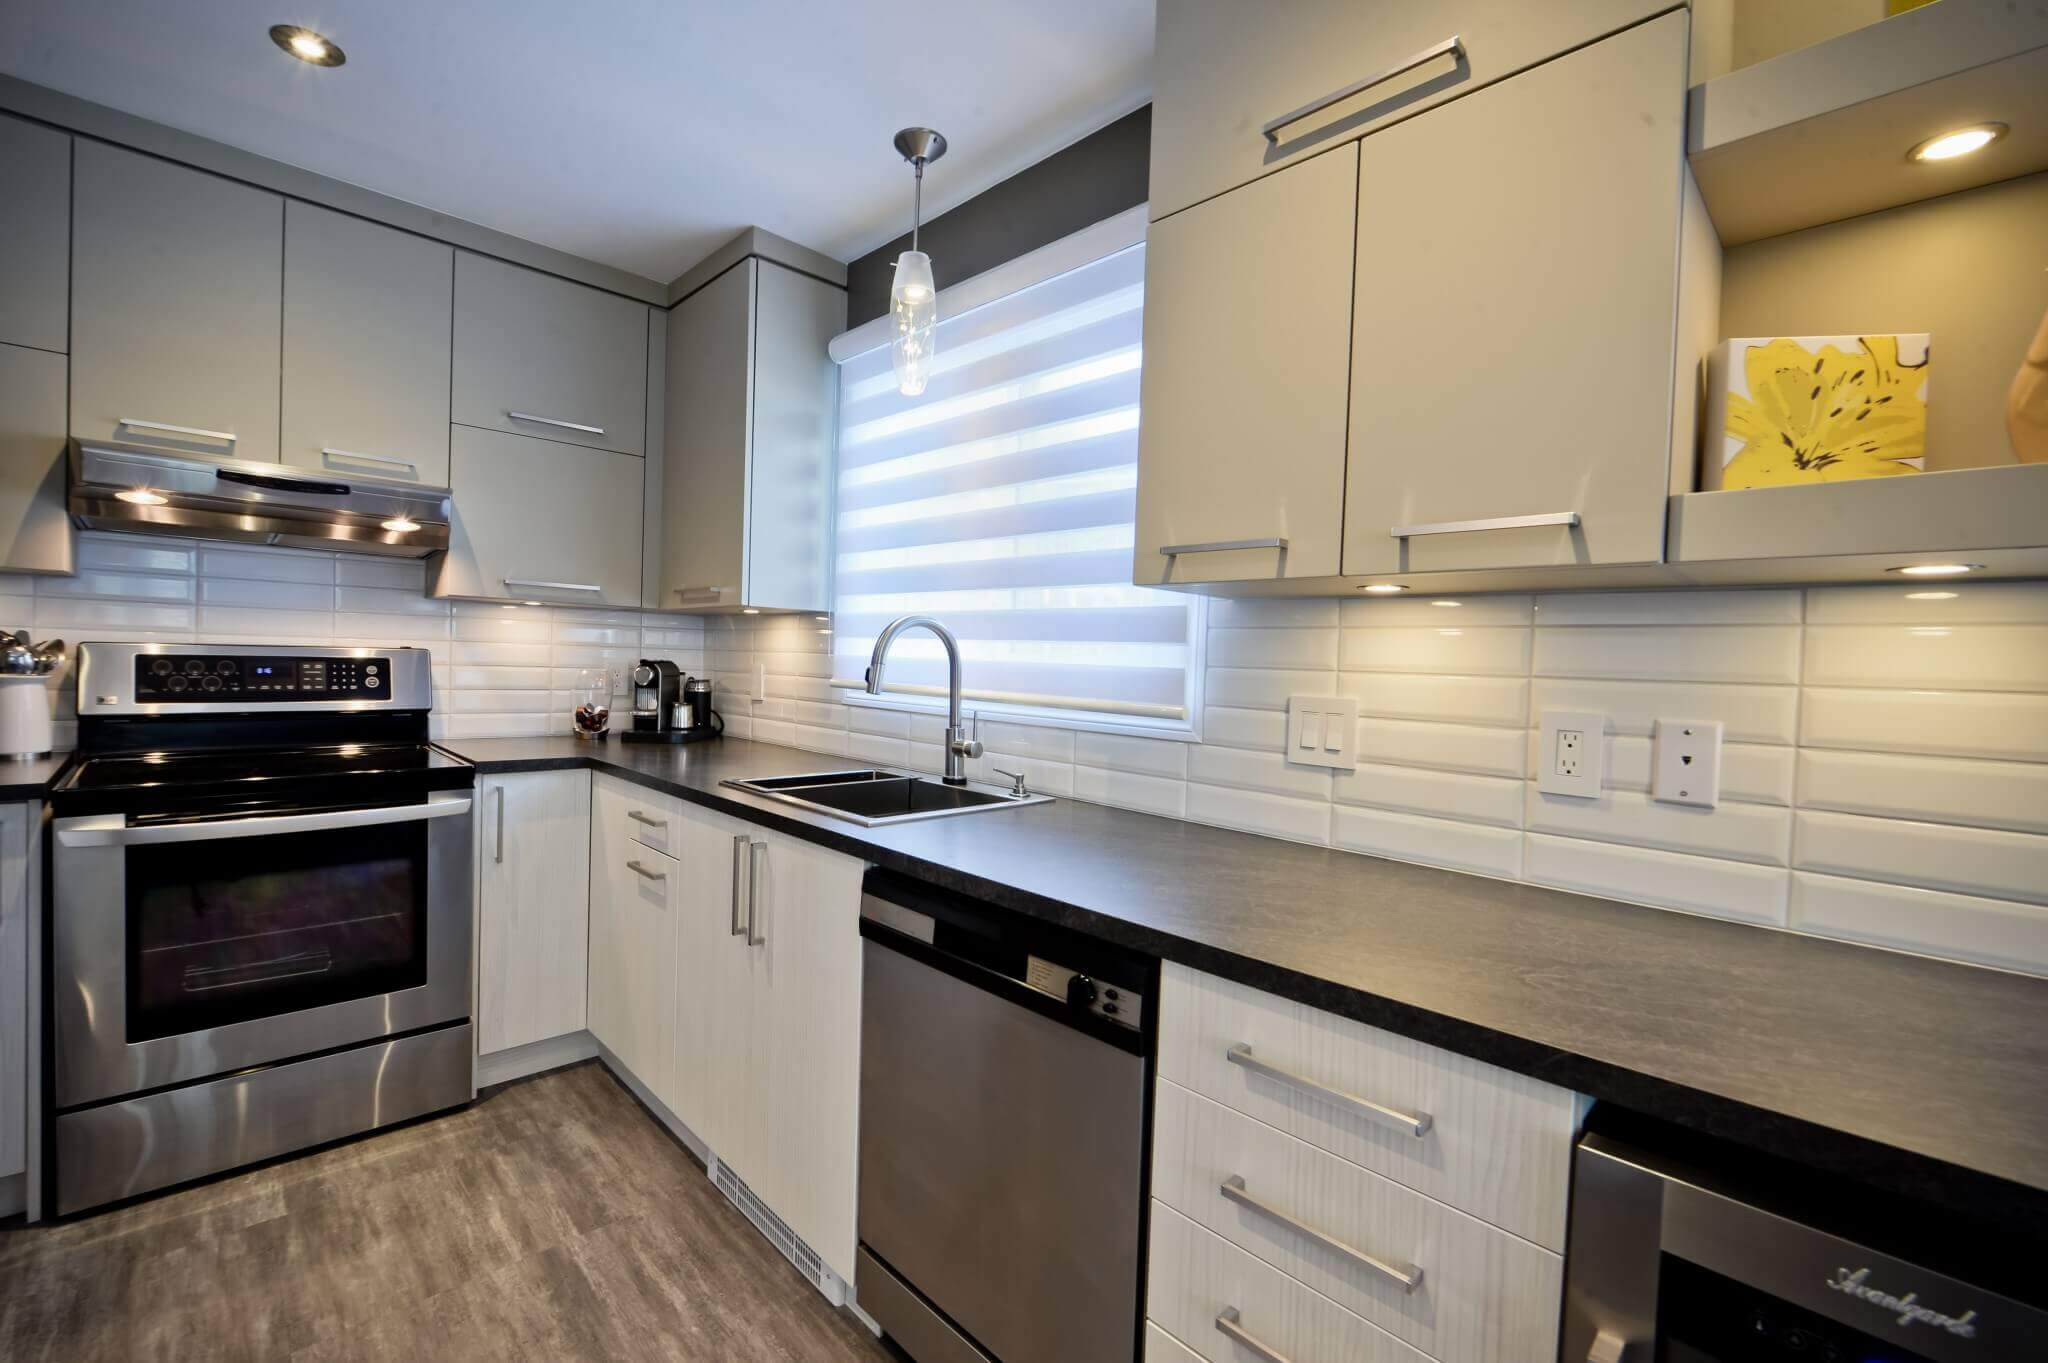 Kitchen Renovation Cloutier Project White ceramic backsplash Melamine Cabinets Modern Contemporary